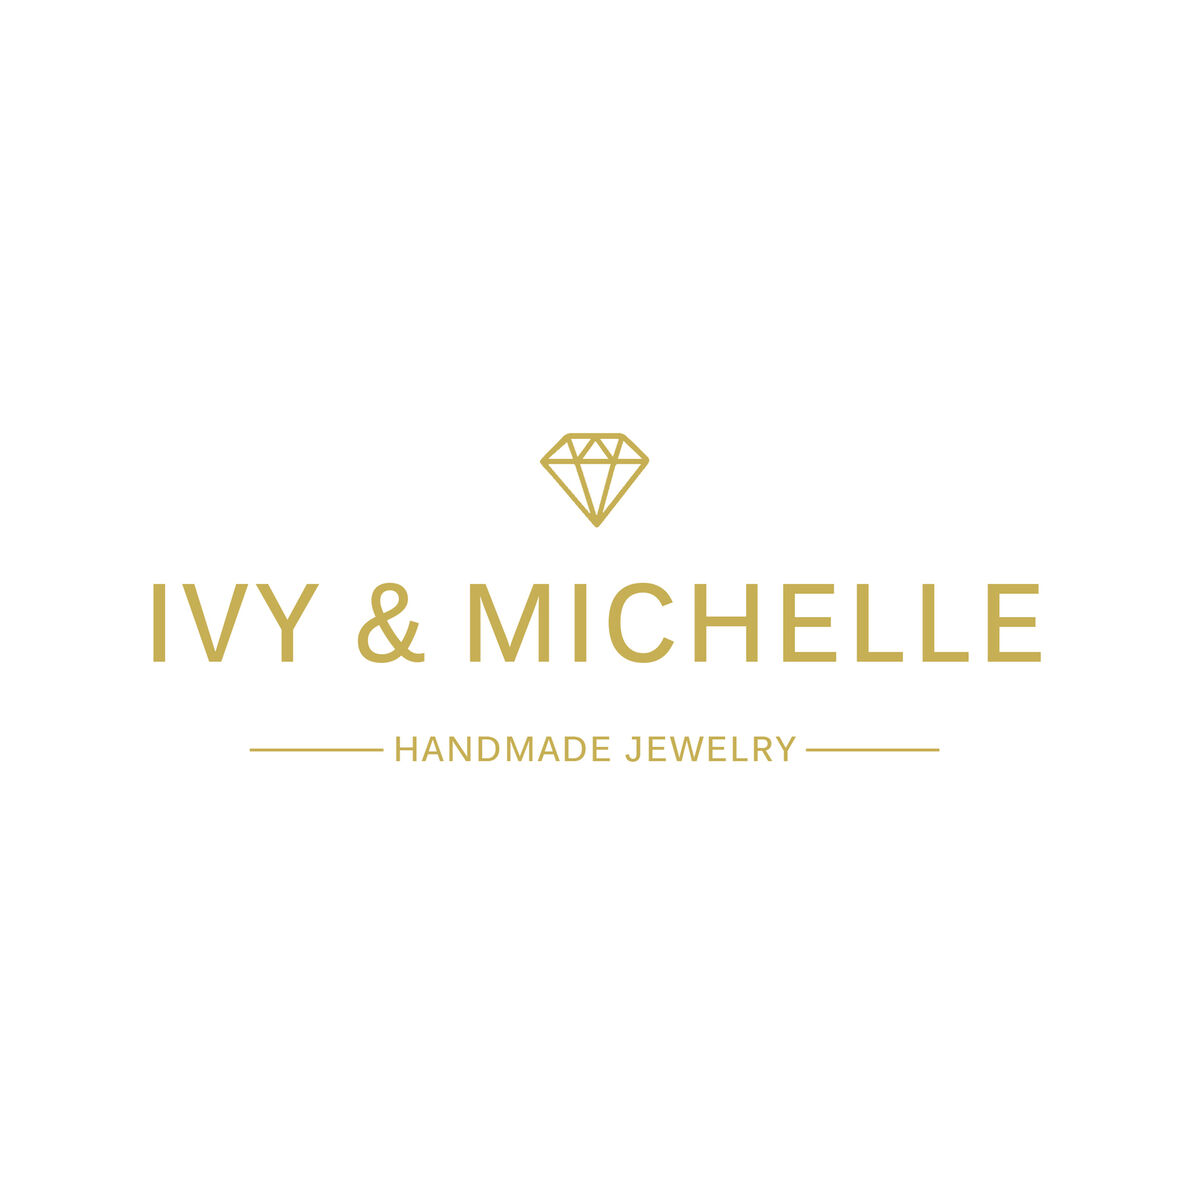 ivy&michellejewelry